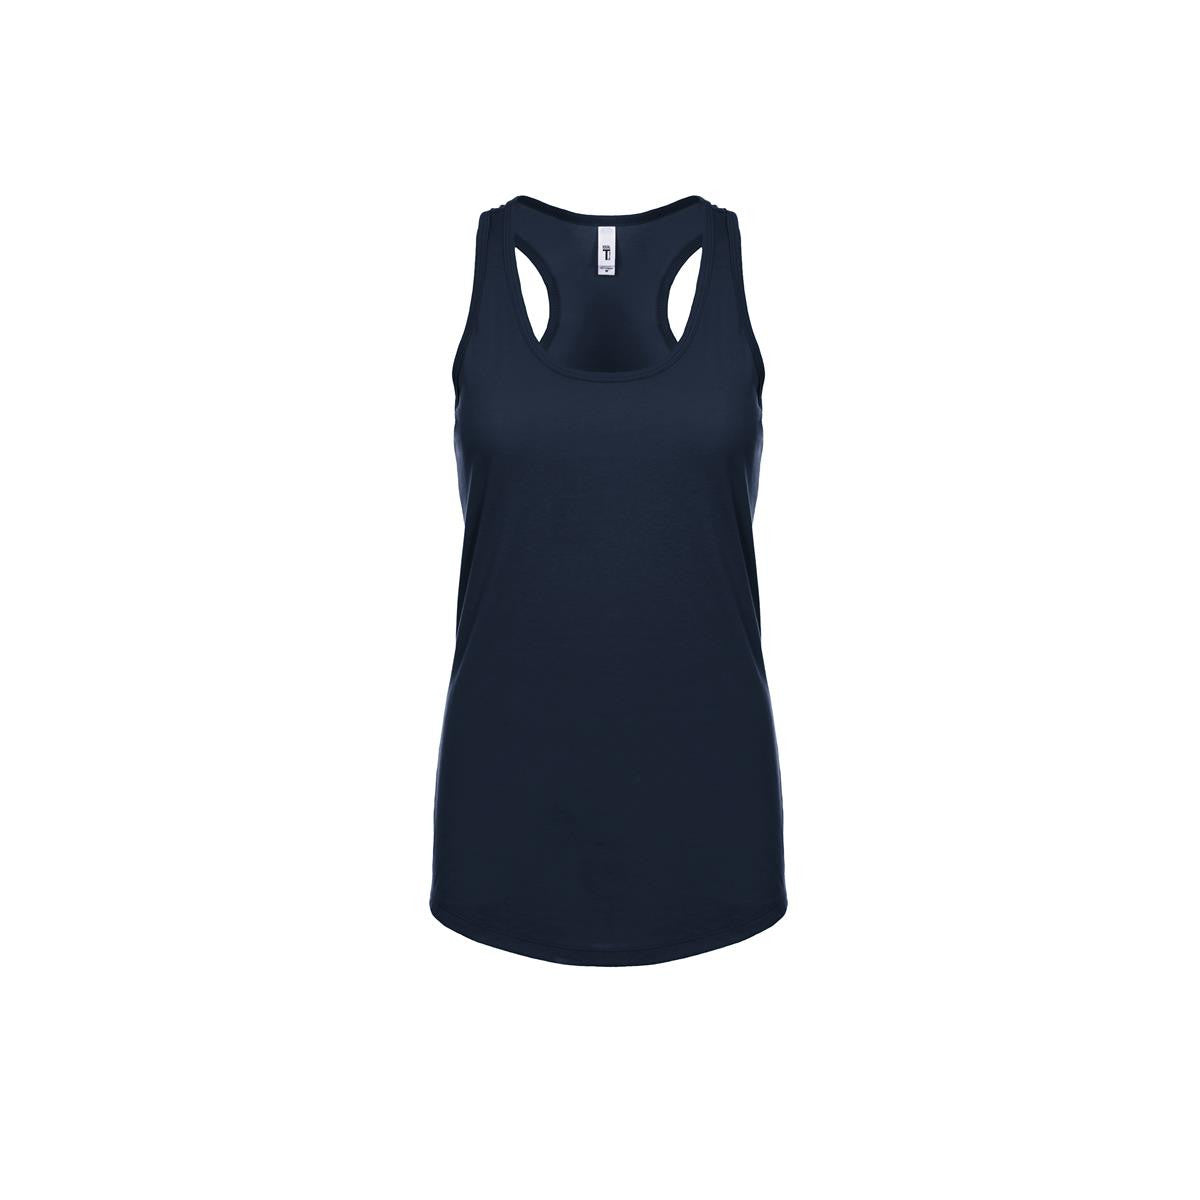 Women's Ideal Racerback Tank Top